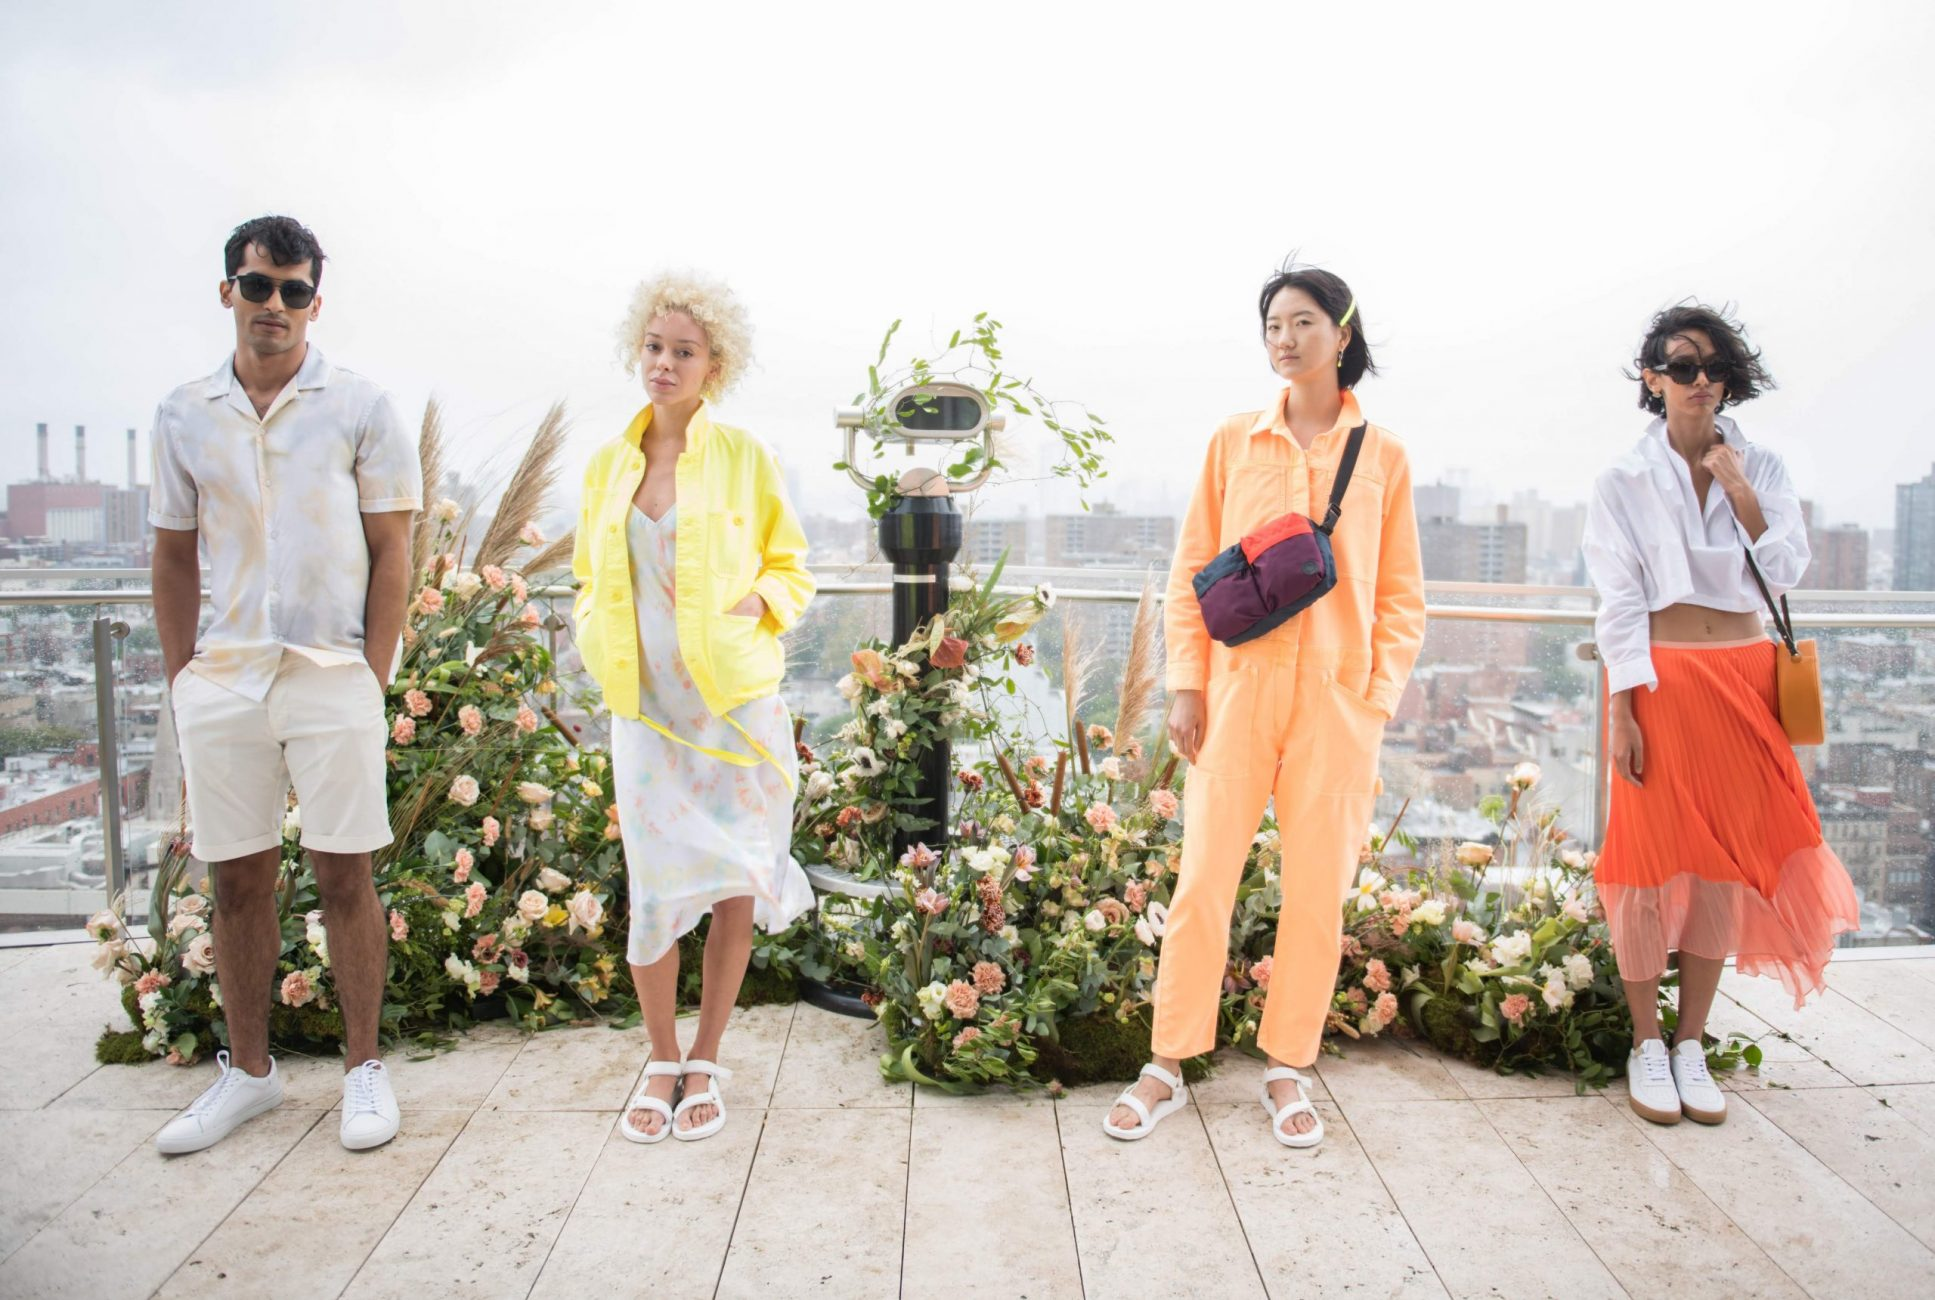 NYC fashion models on standard hotel for NYFW with flowers by hudson botanica